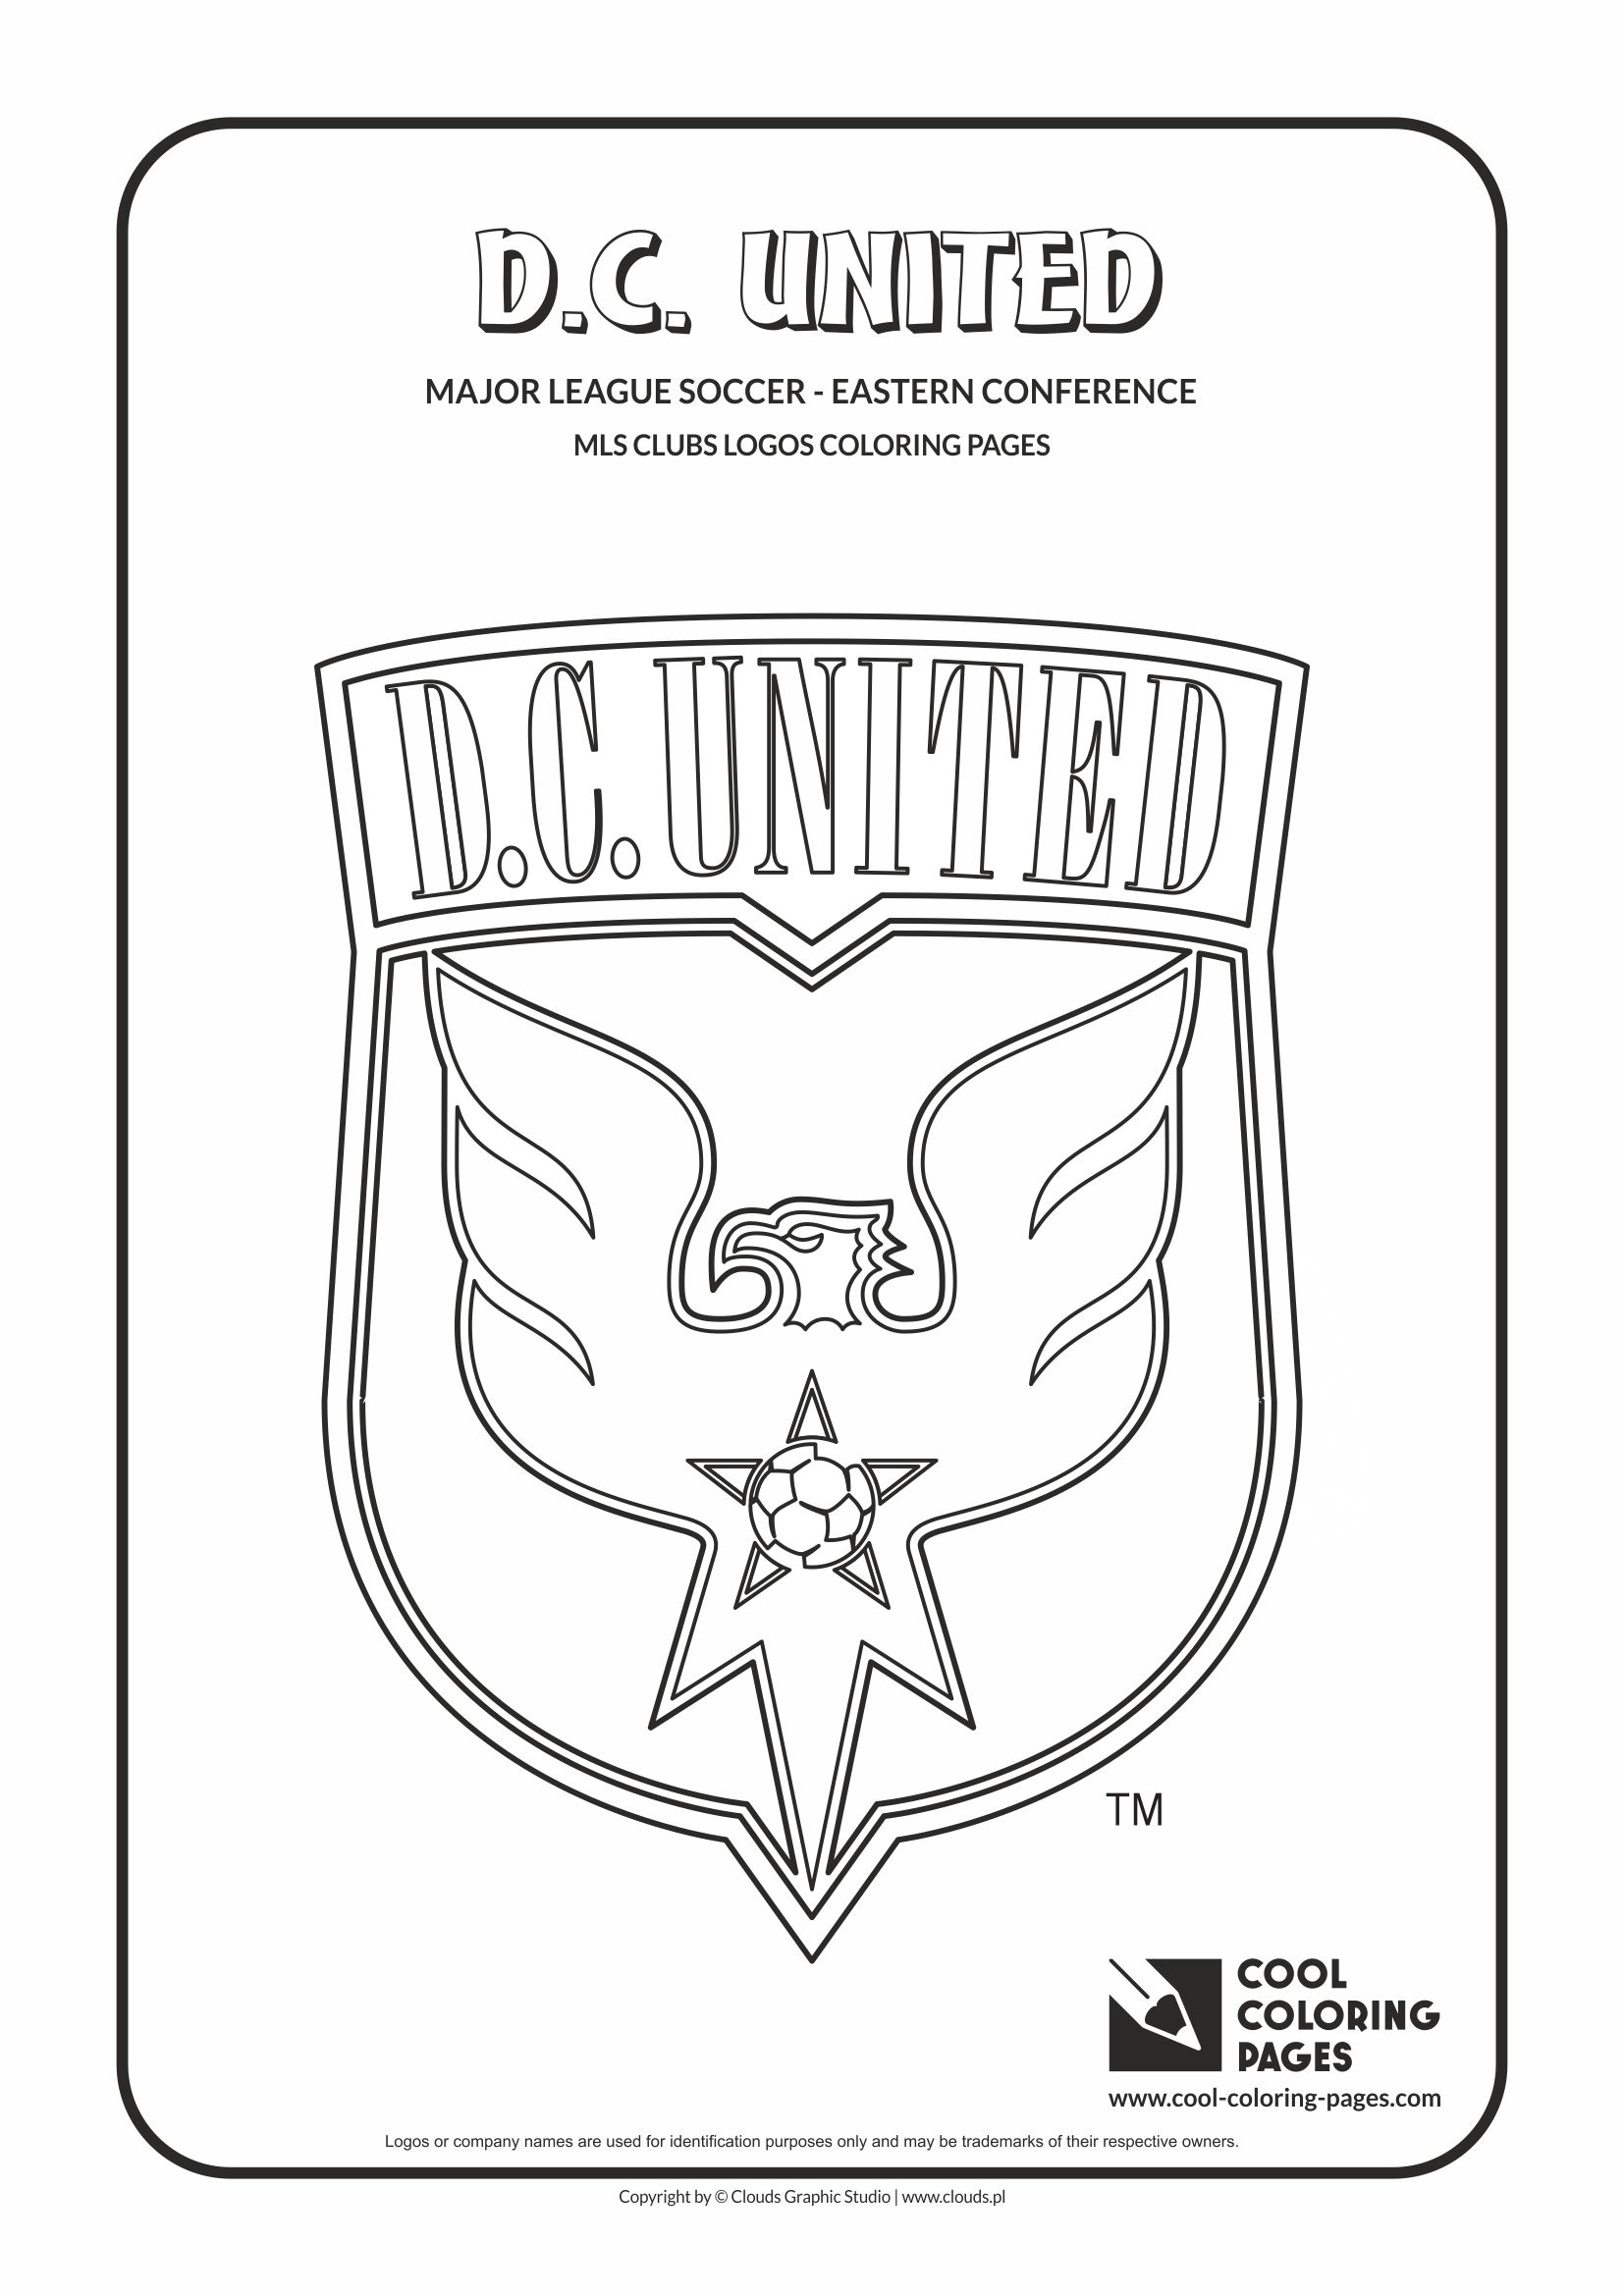 Cool Coloring Pages MLS soccer clubs logos coloring pages - Cool ...